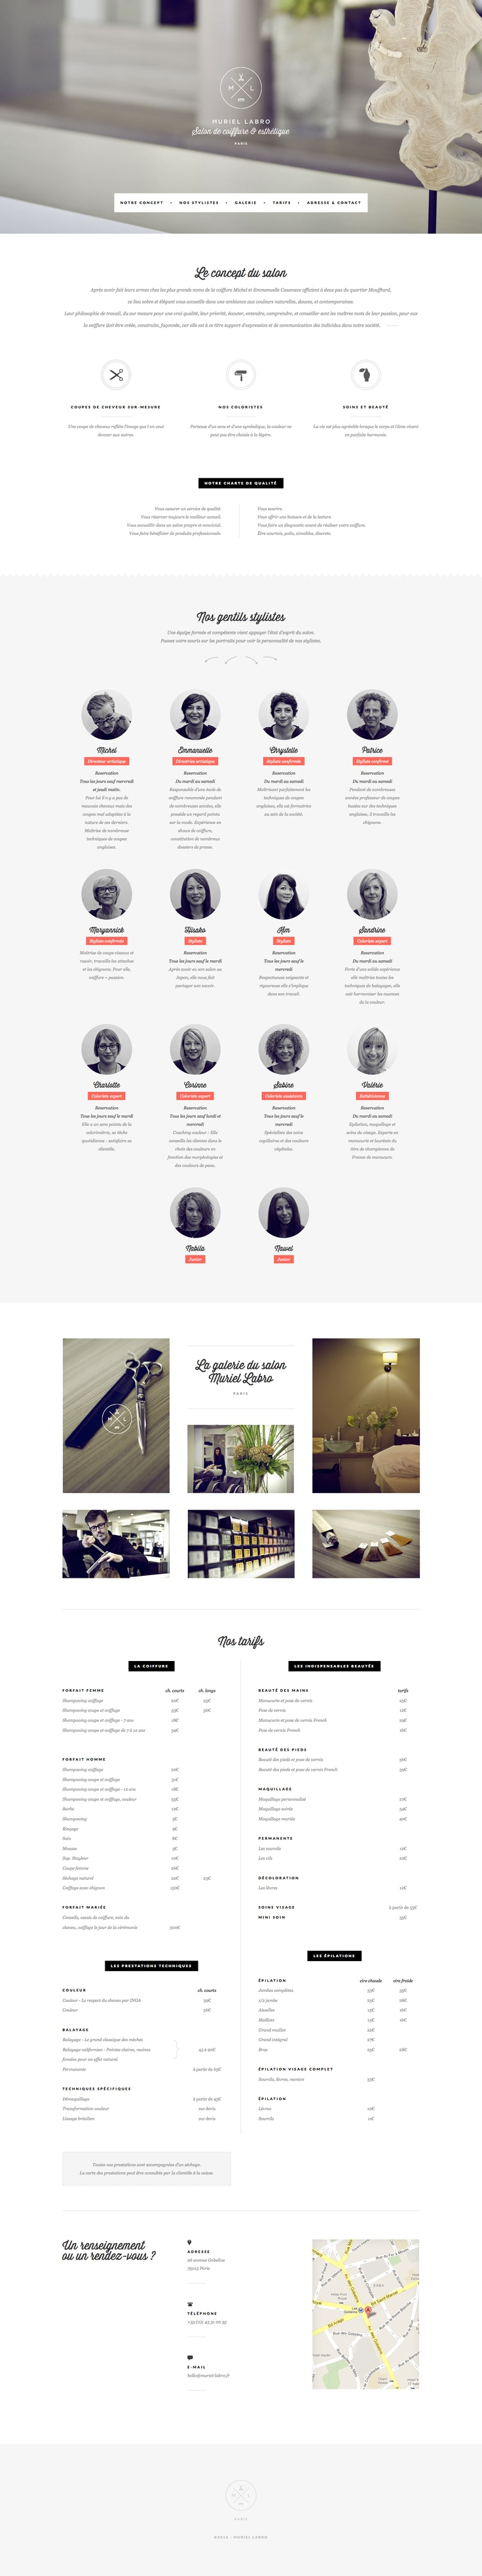 Hi Yasmine - I'll just be pinning possible site design inspirations to your pinboard for you to review. Feel free to comment on anything you like or don't like about each design. I like the layout of information of this site and the one-page functionality but feel like your site would feature bolder colors and more vibrant images.